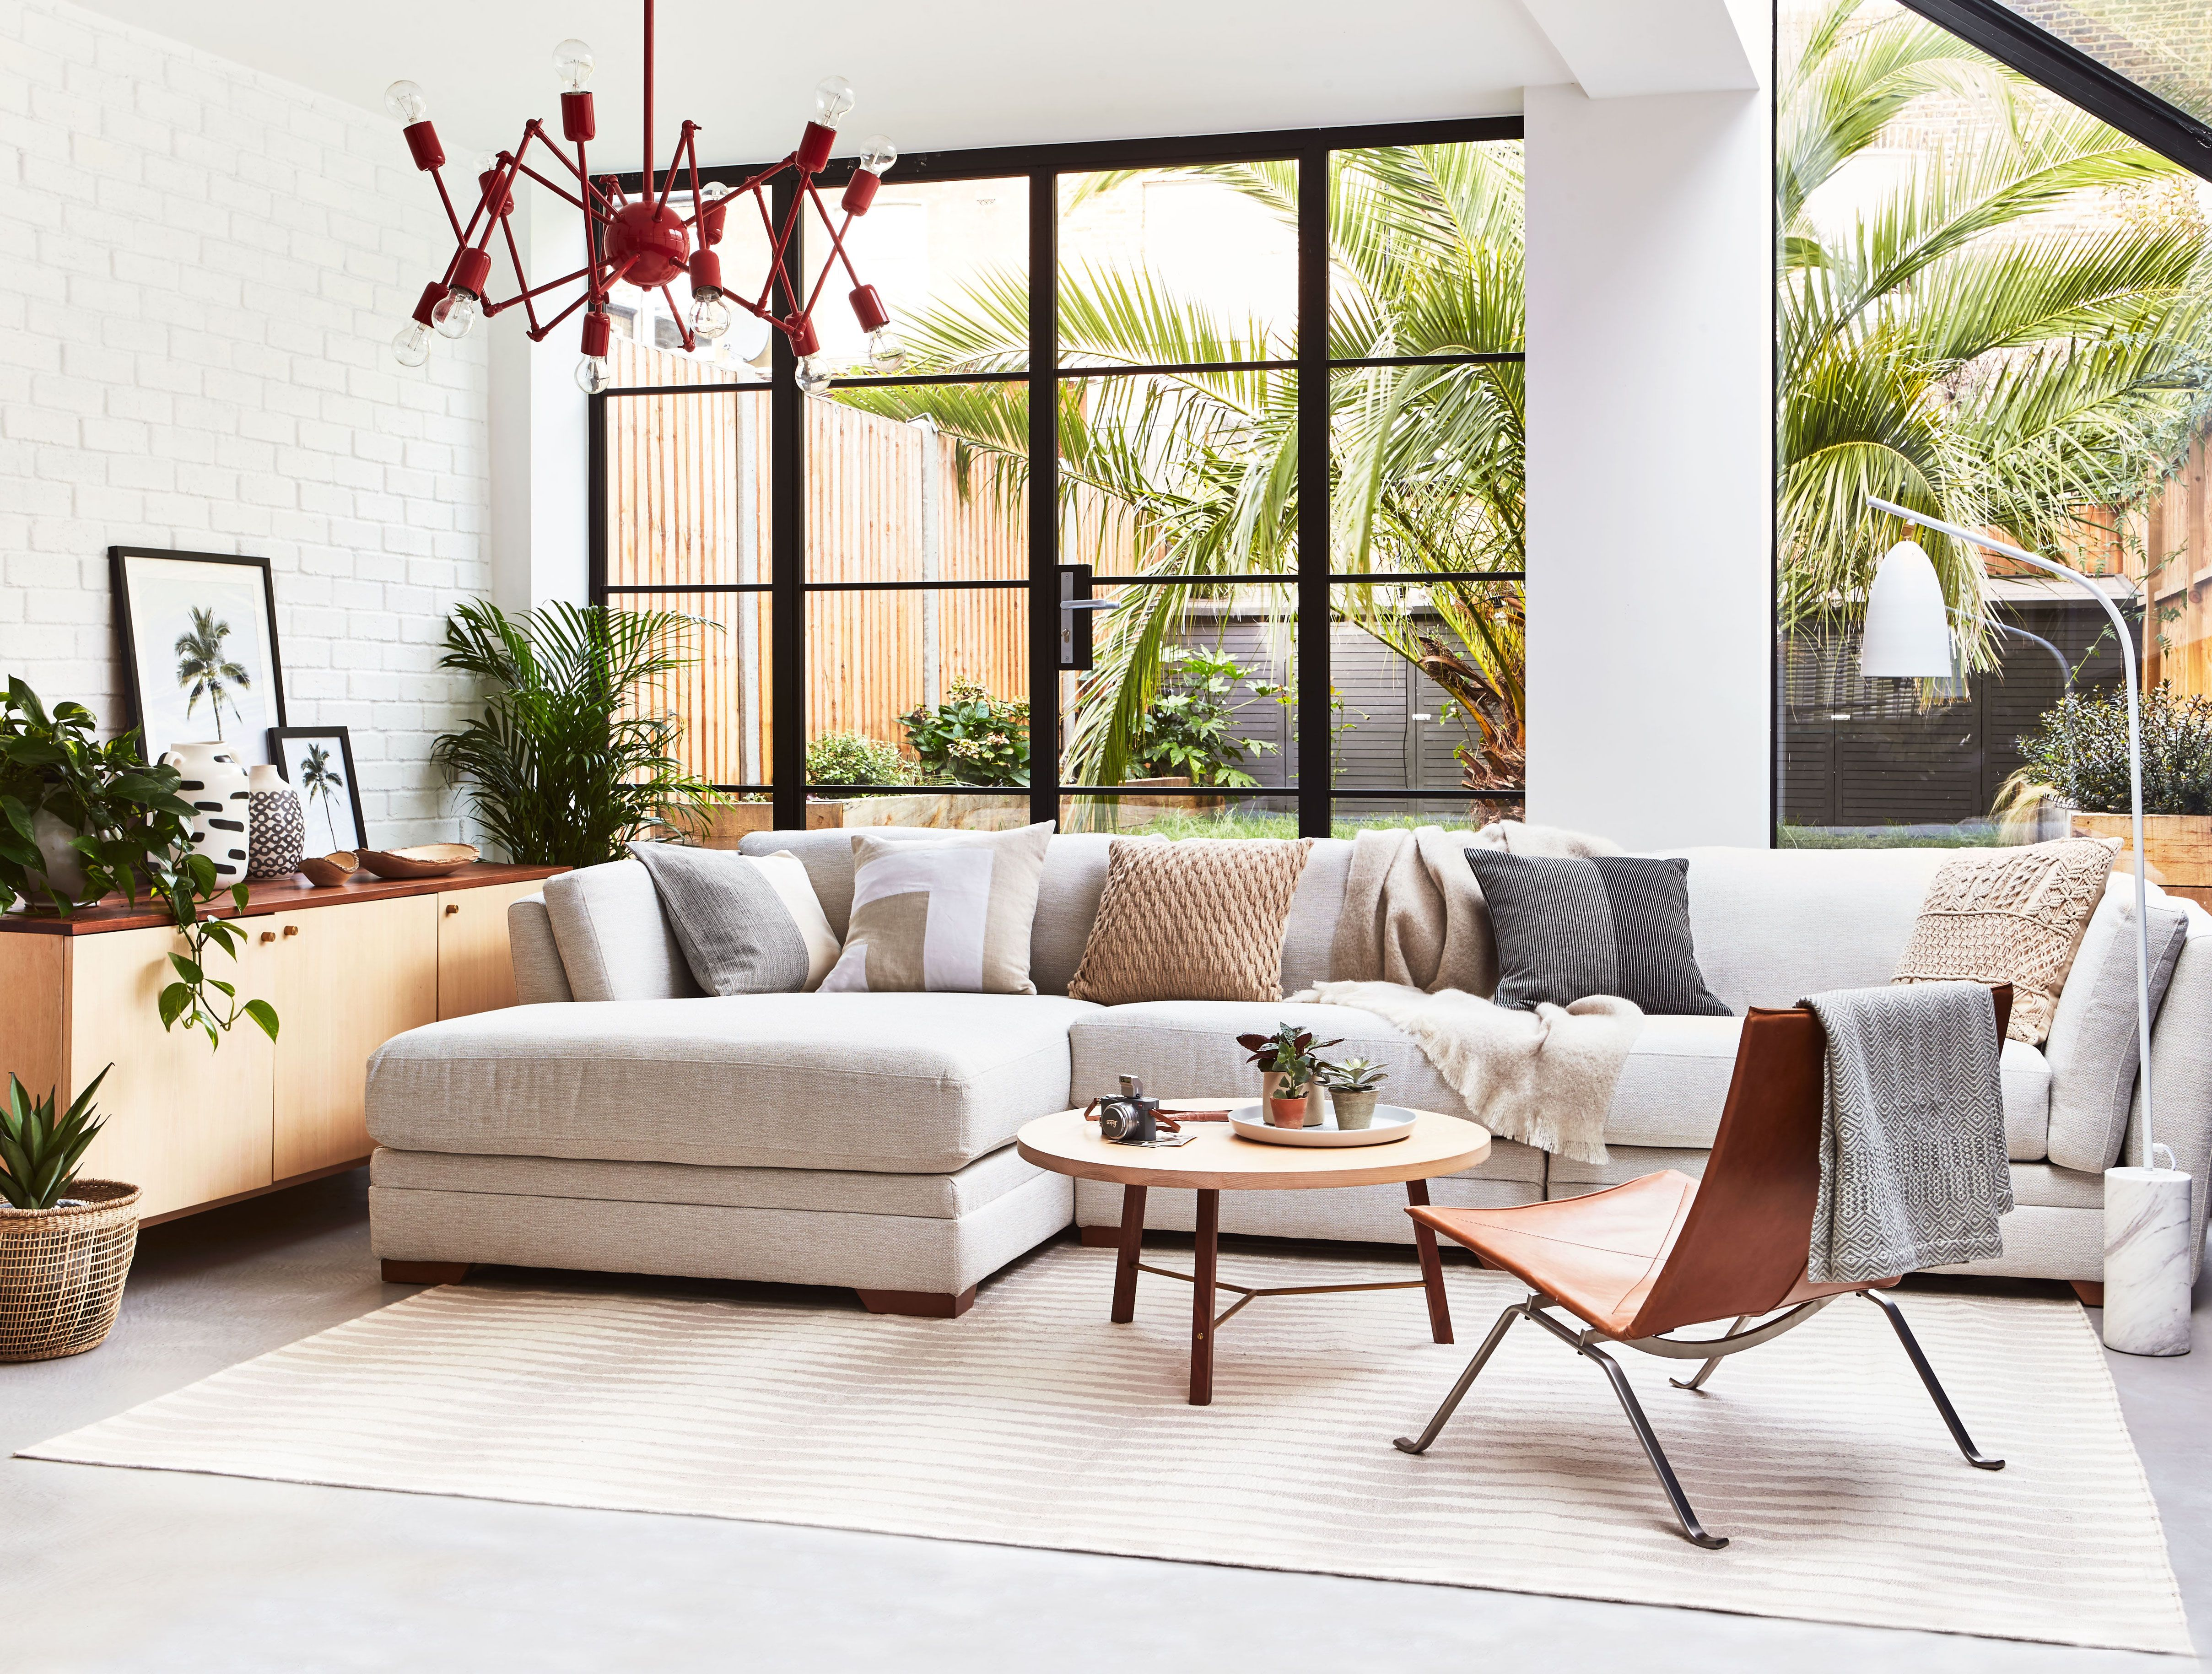 dfs sofas that come apart cheap leather sectional sofa the modular long beach is ultimate in versatility new house beautiful x